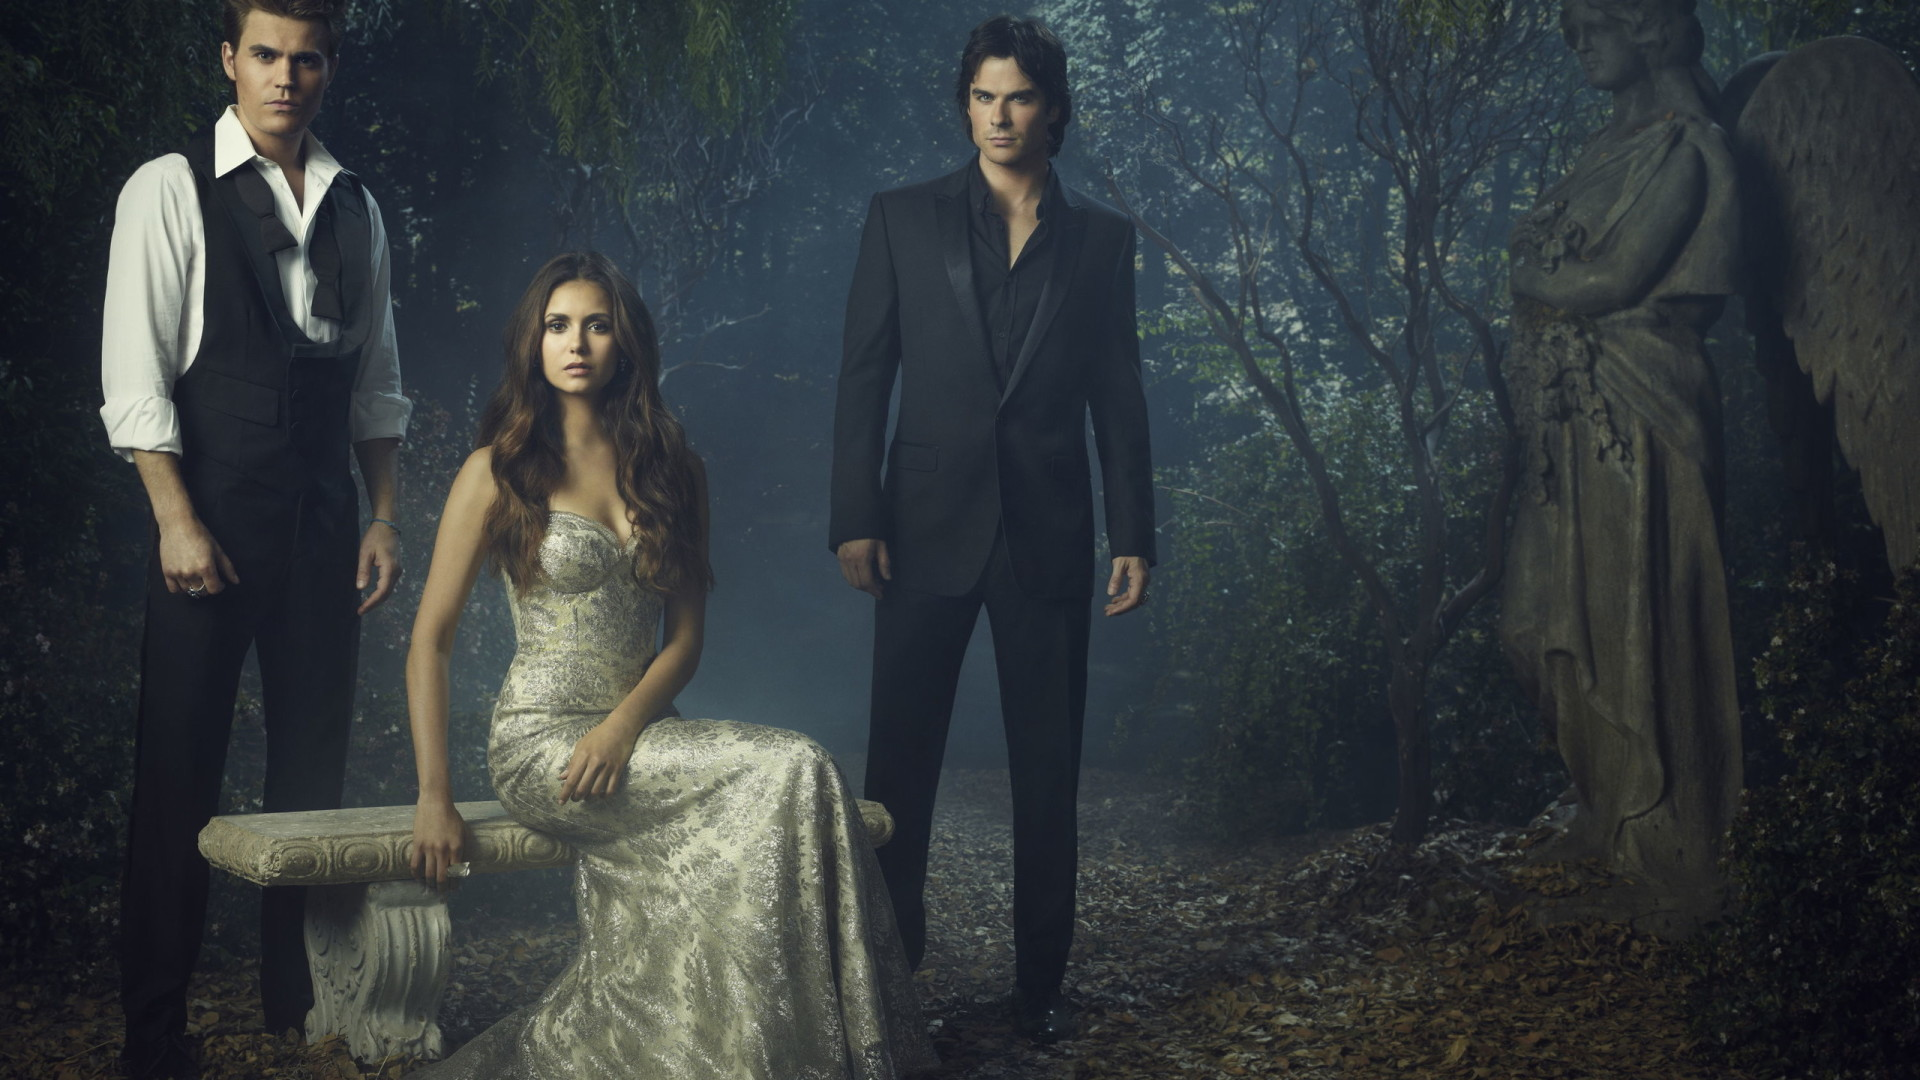 Wallpaper The Vampire Diaries: Wallpaper, High Definition, High